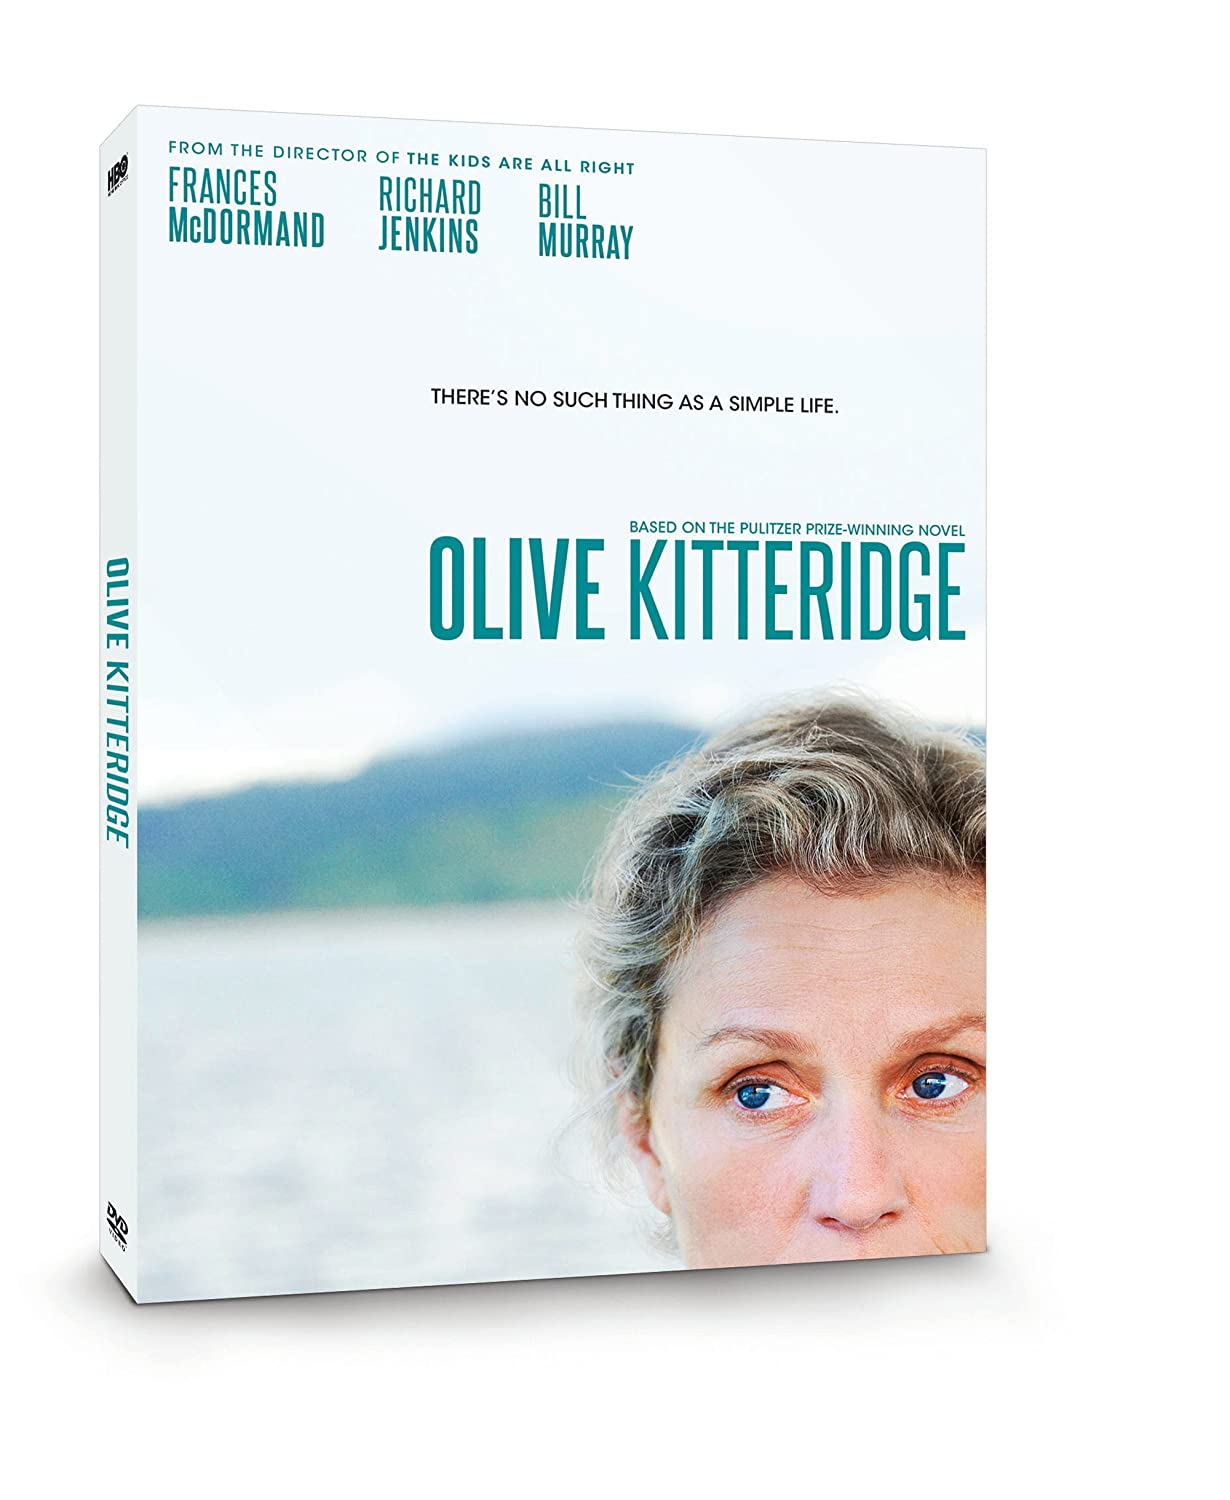 FRENCH TÉLÉCHARGER OLIVE KITTERIDGE